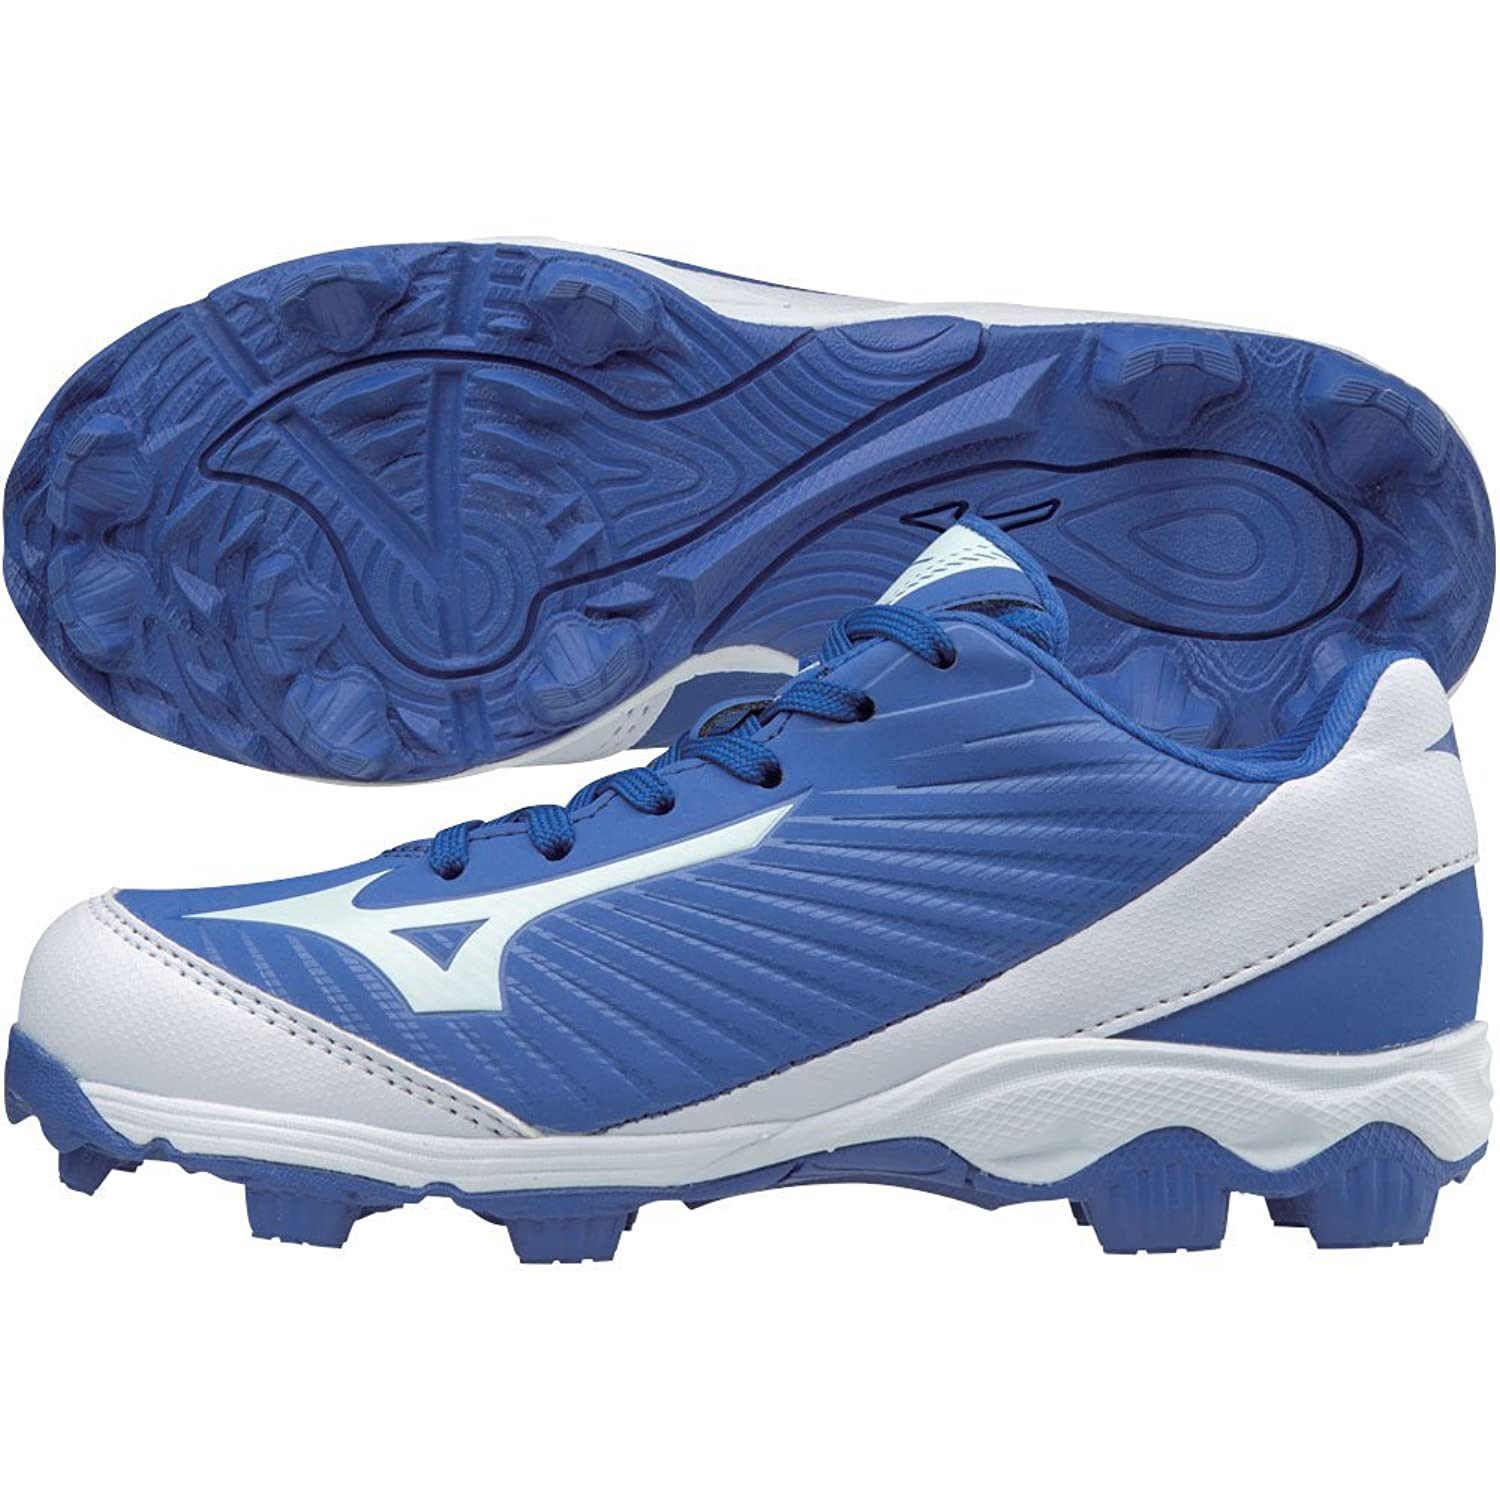 Mizuno (MIZD9) ユニセックス?キッズ 9-Spike Advanced Franchise 9 Molded Youth Baseball Cleat - Low